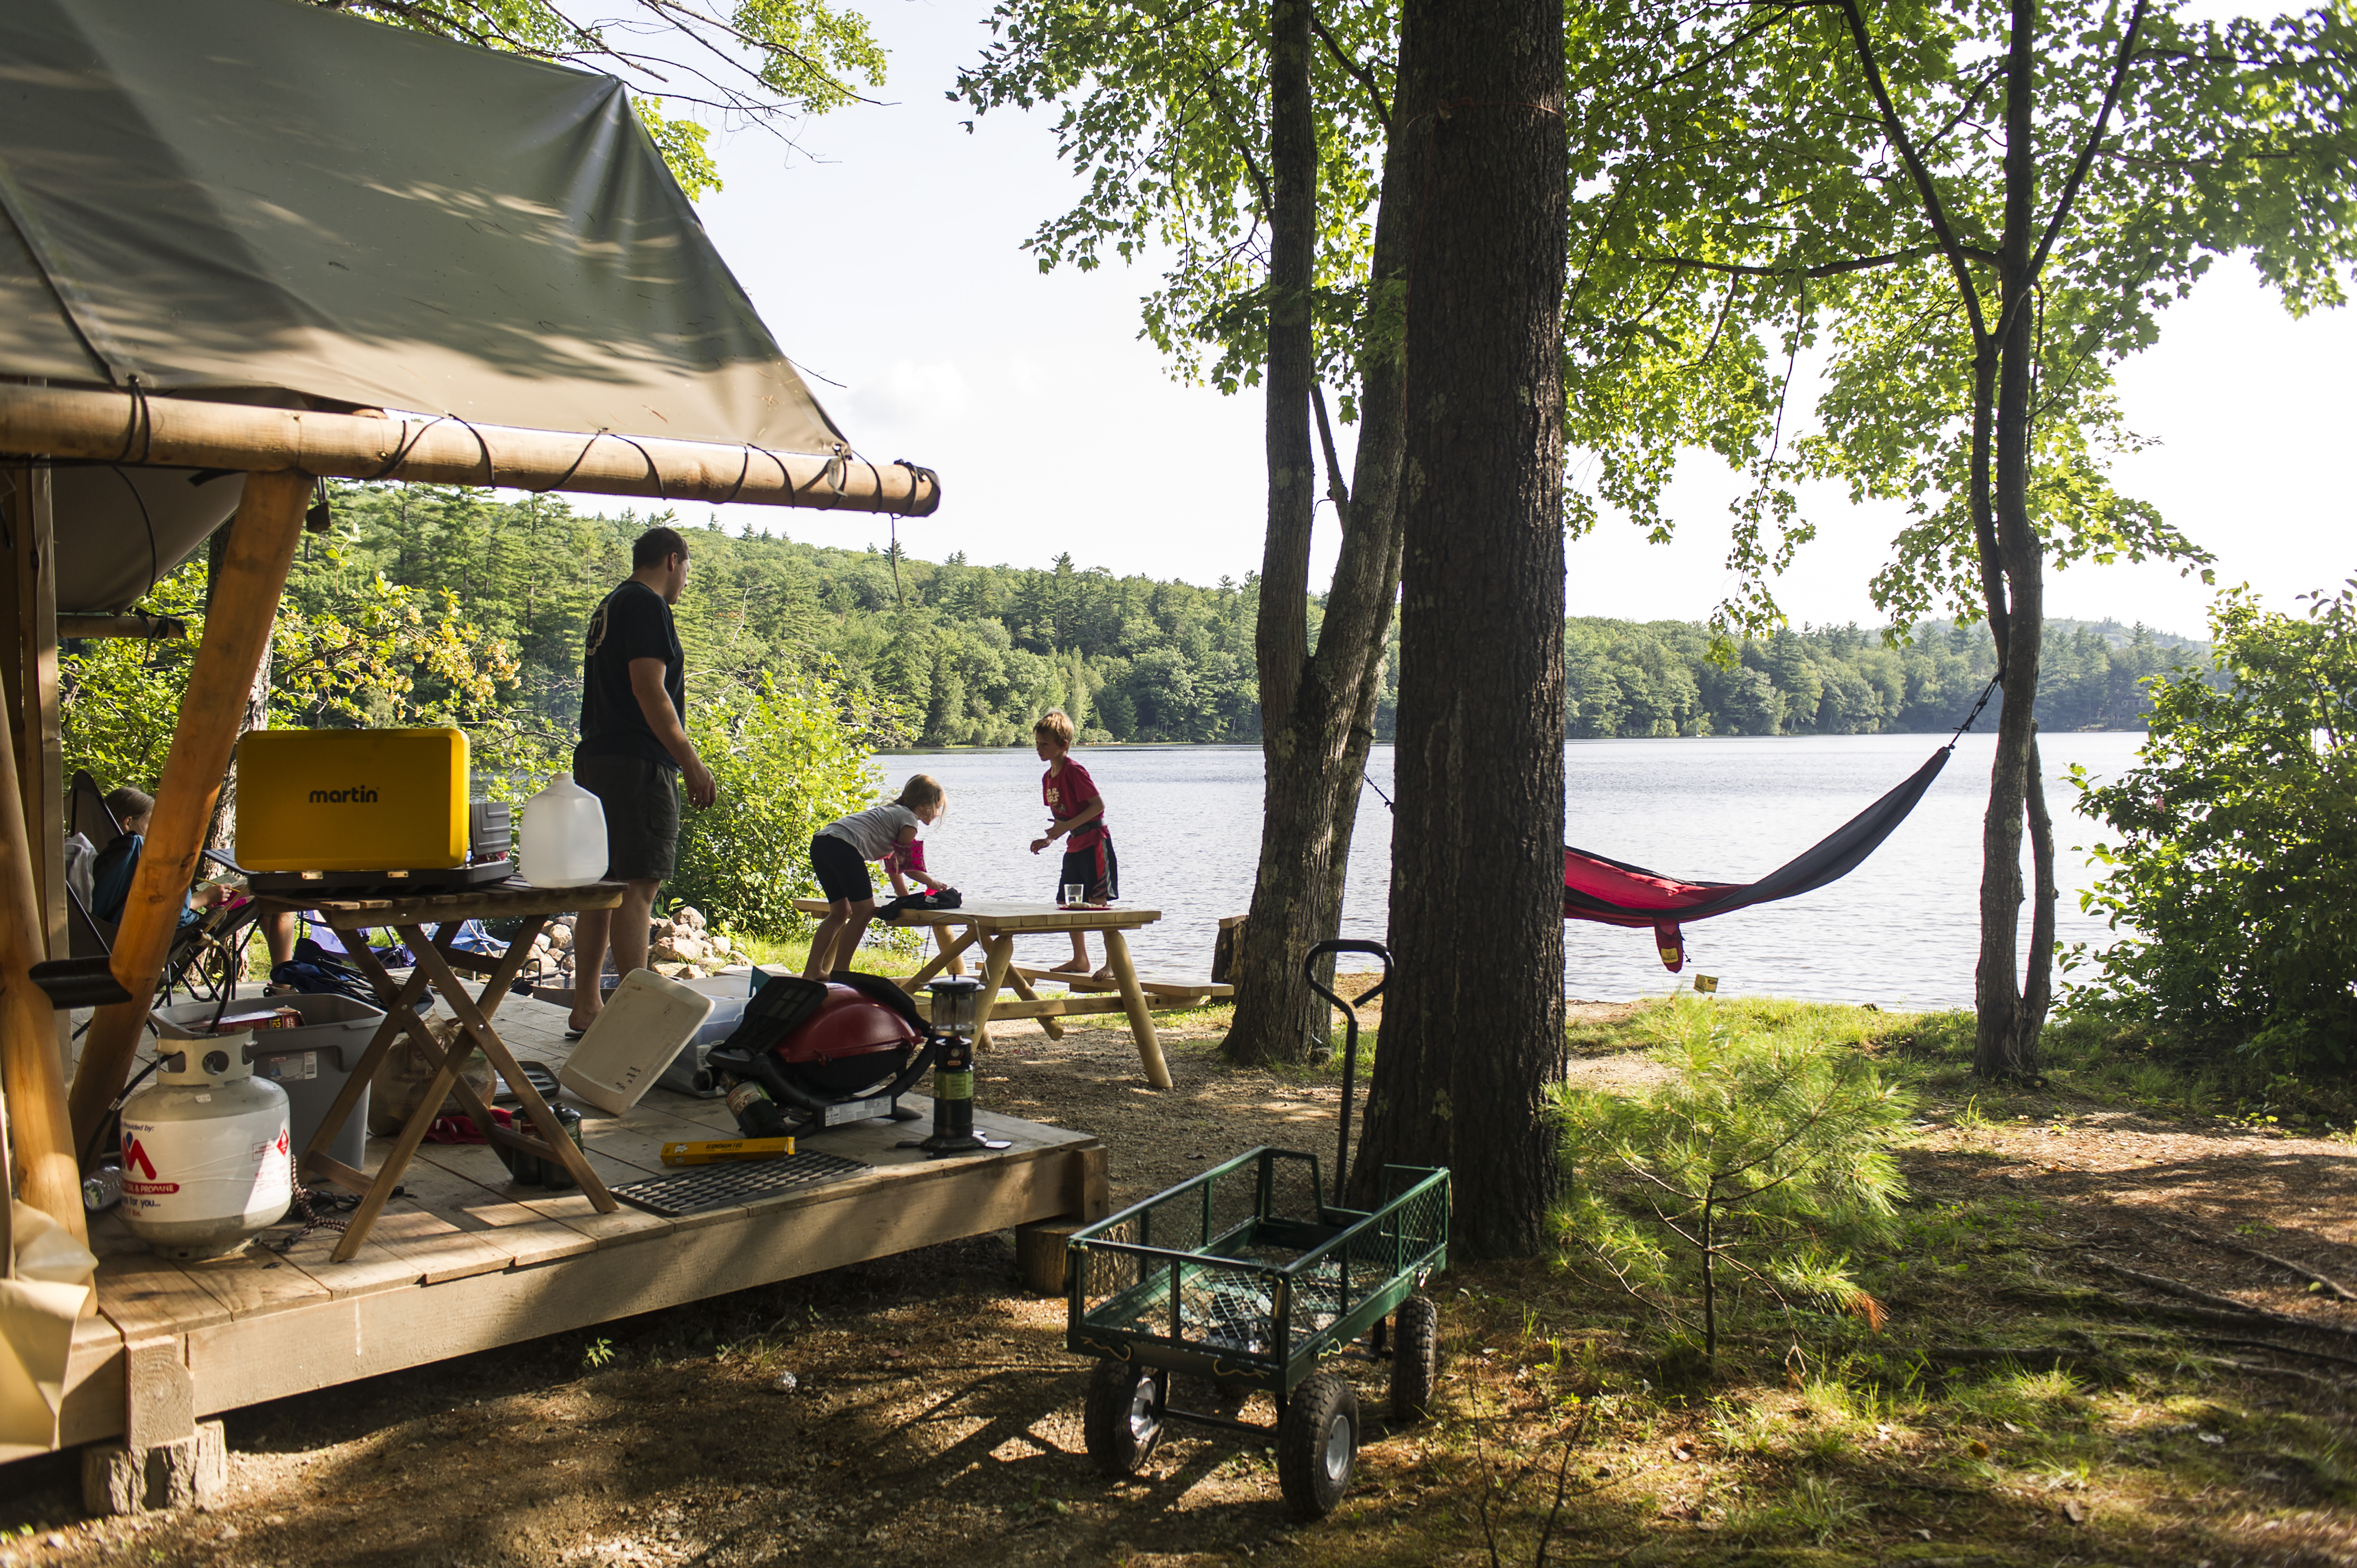 A survey of 2,000 campgrounds by campgroundviews.com found that advance bookings were up 50% from the average figures before the pandemic.